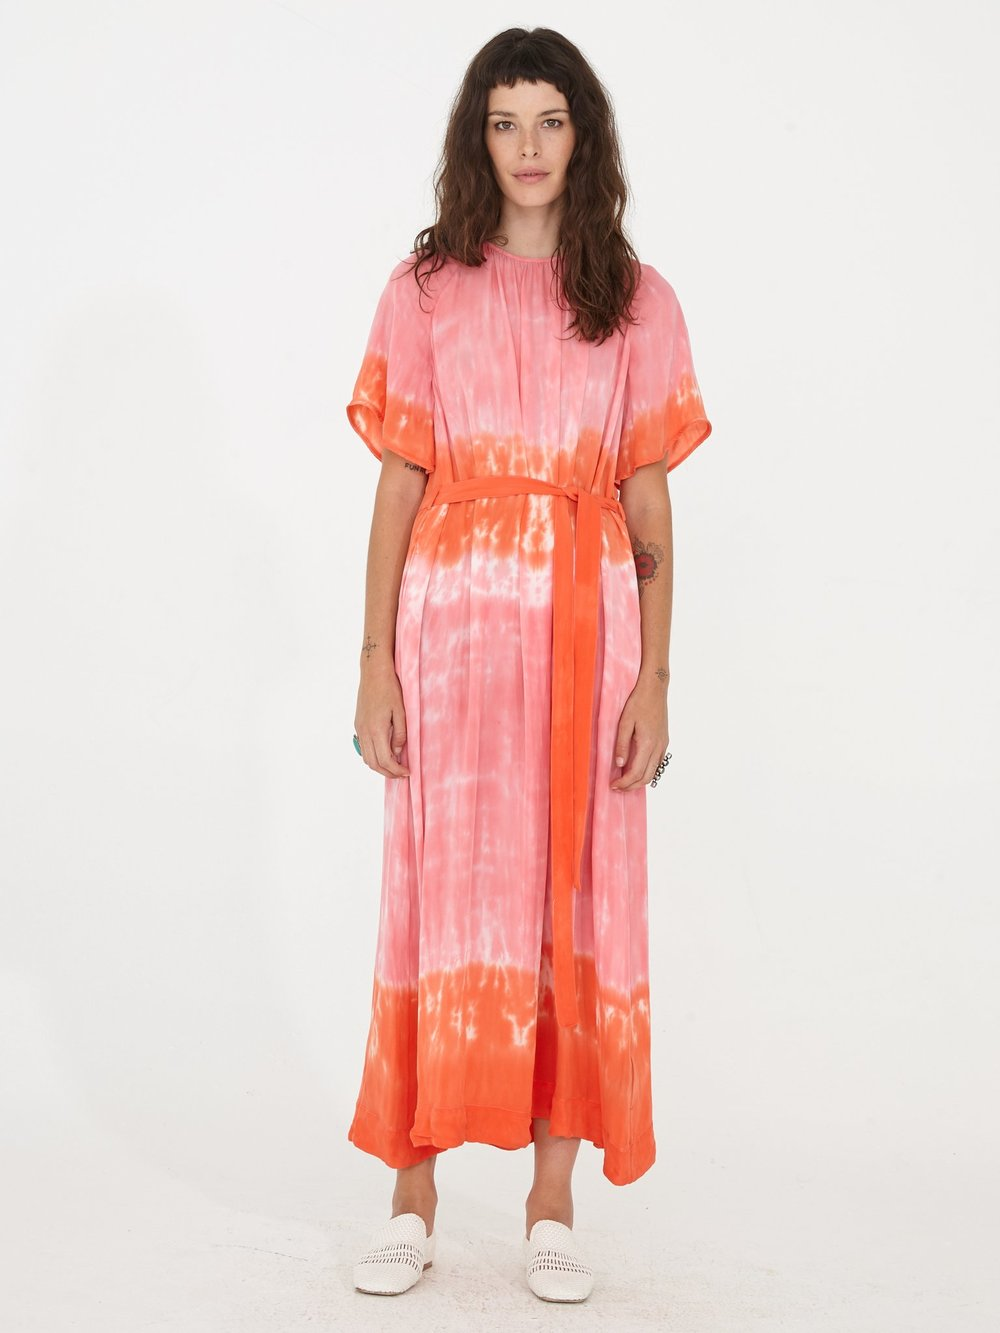 Y84_6916TD_Silk_Tie_Dye_Flutter_Sleeve_Dress_Grapefruit_Tie_Dye_1211.jpg